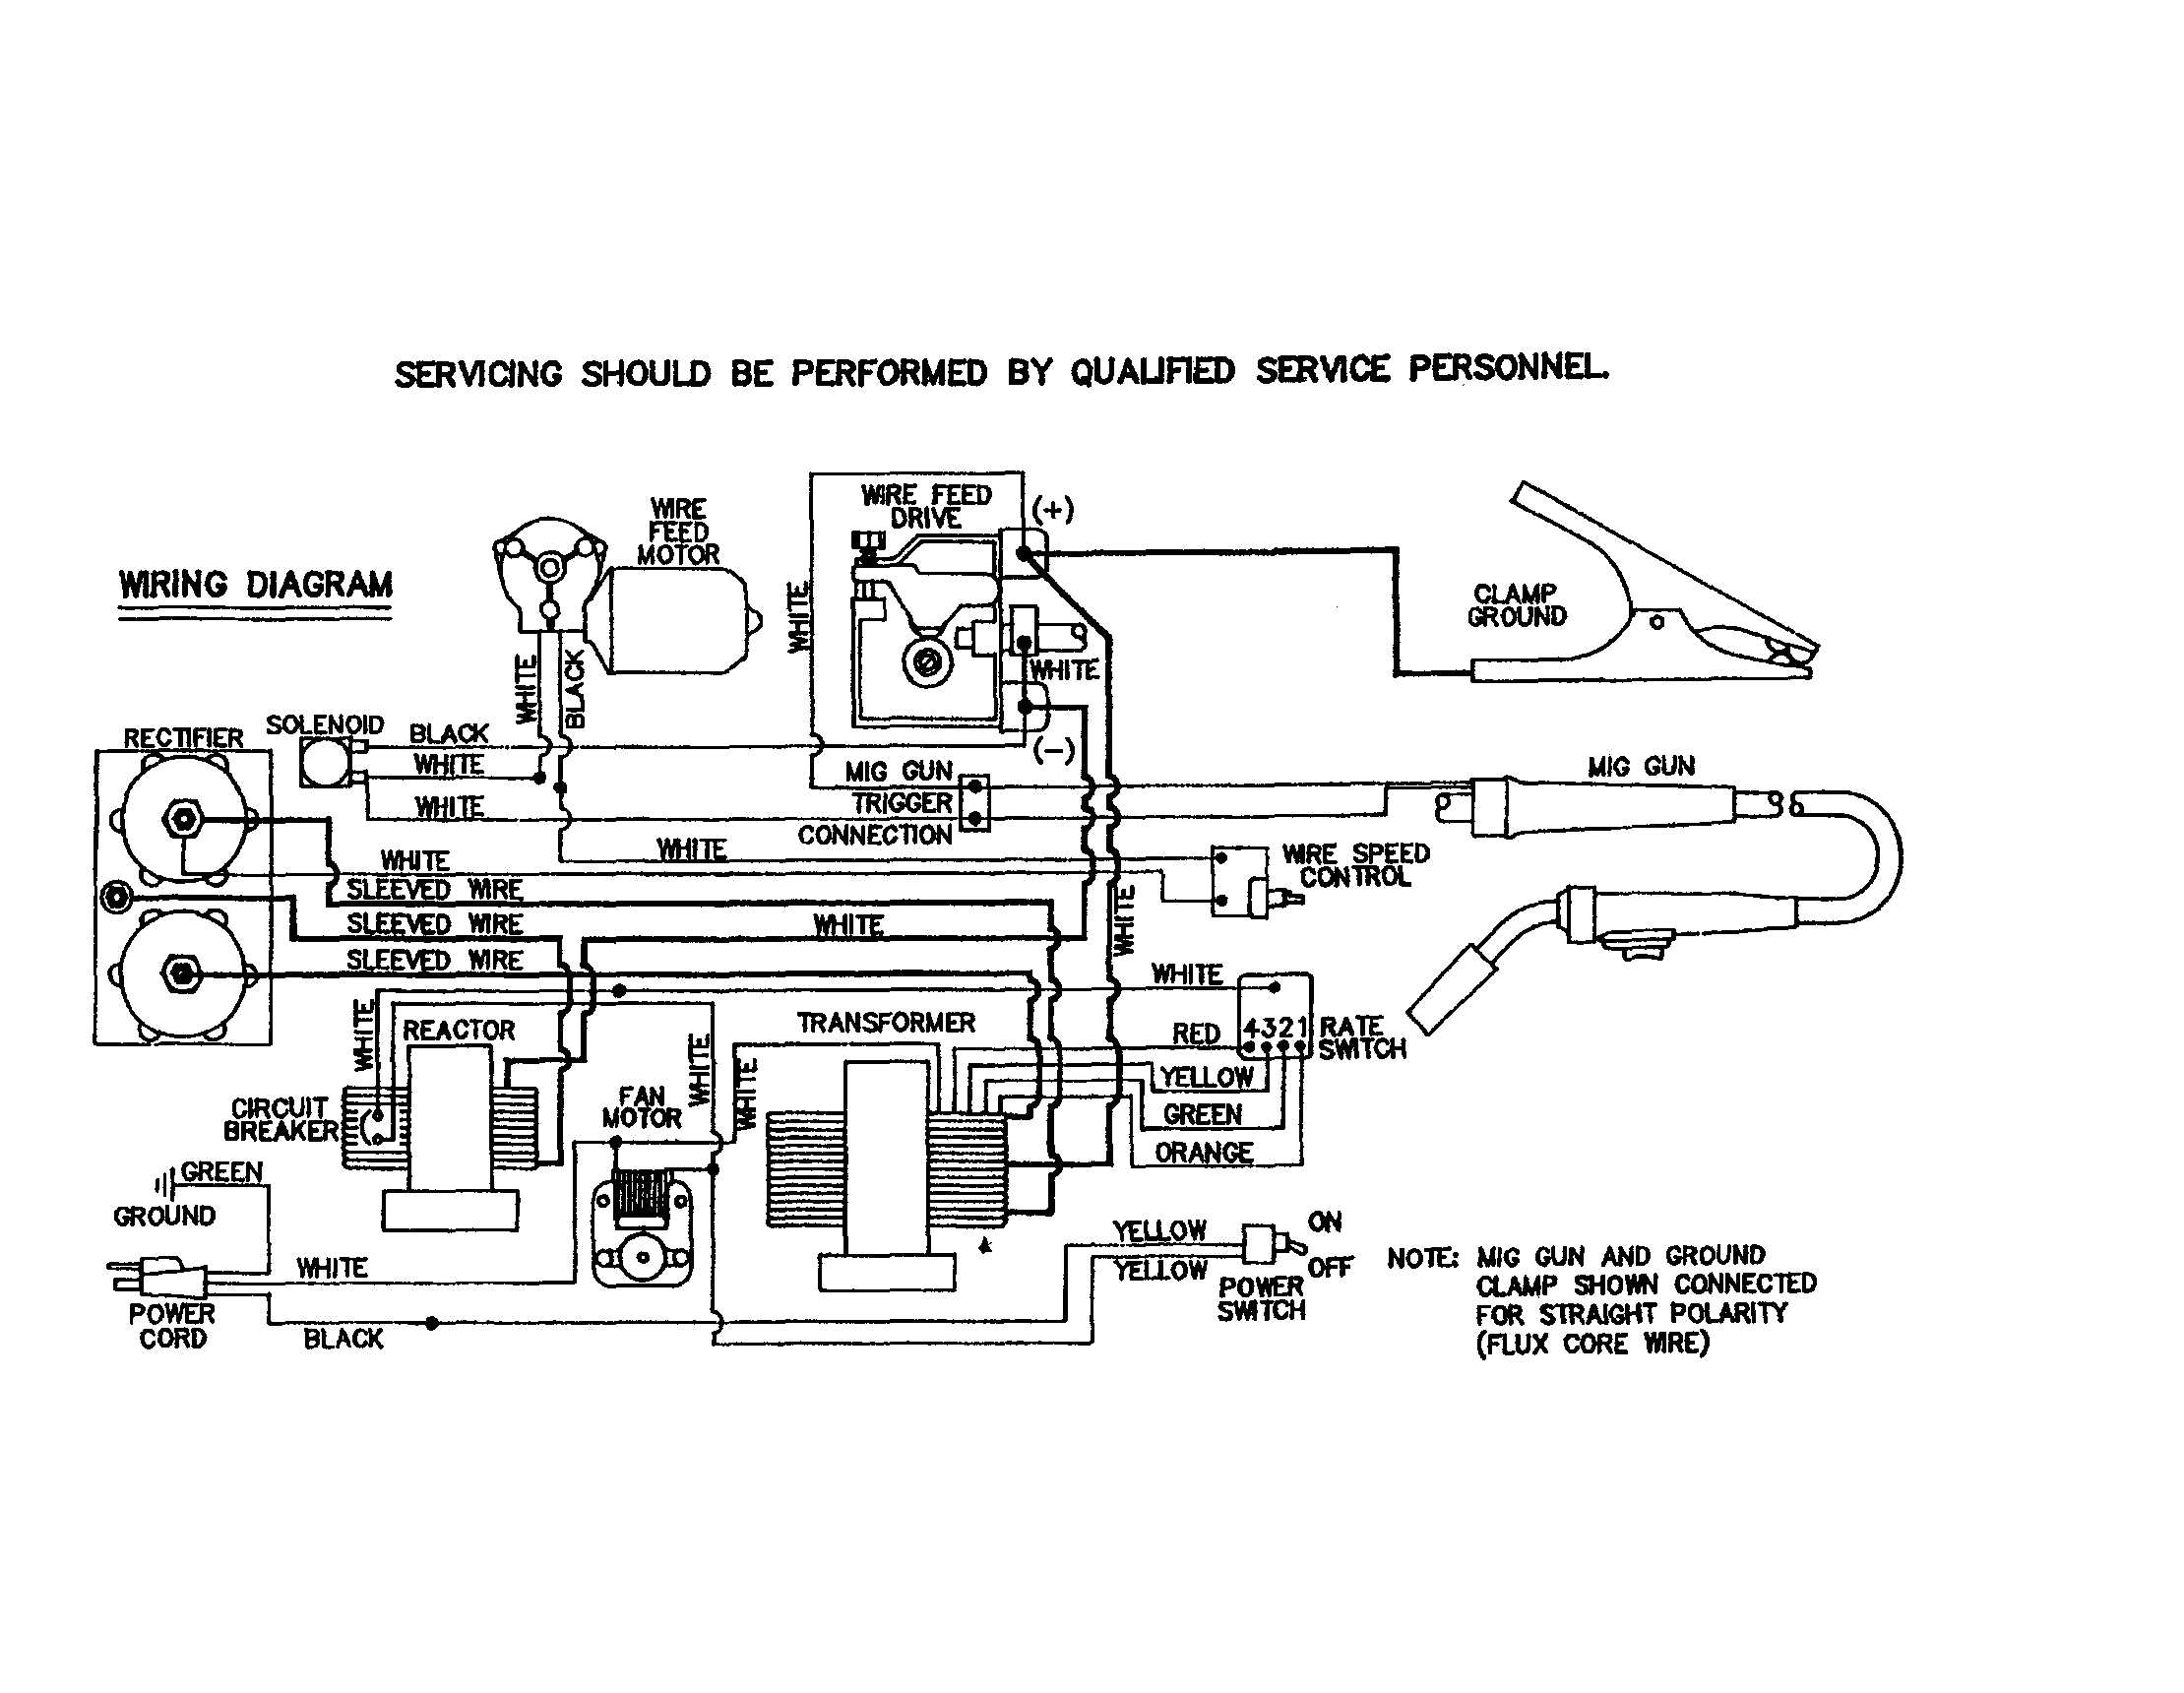 new modra generator wiring diagram #diagram #diagramsample #diagramtemplate  #wiringdiagram #diagramchart #worksheet #worksheettemplate che… | diagram,  welders, wire  pinterest